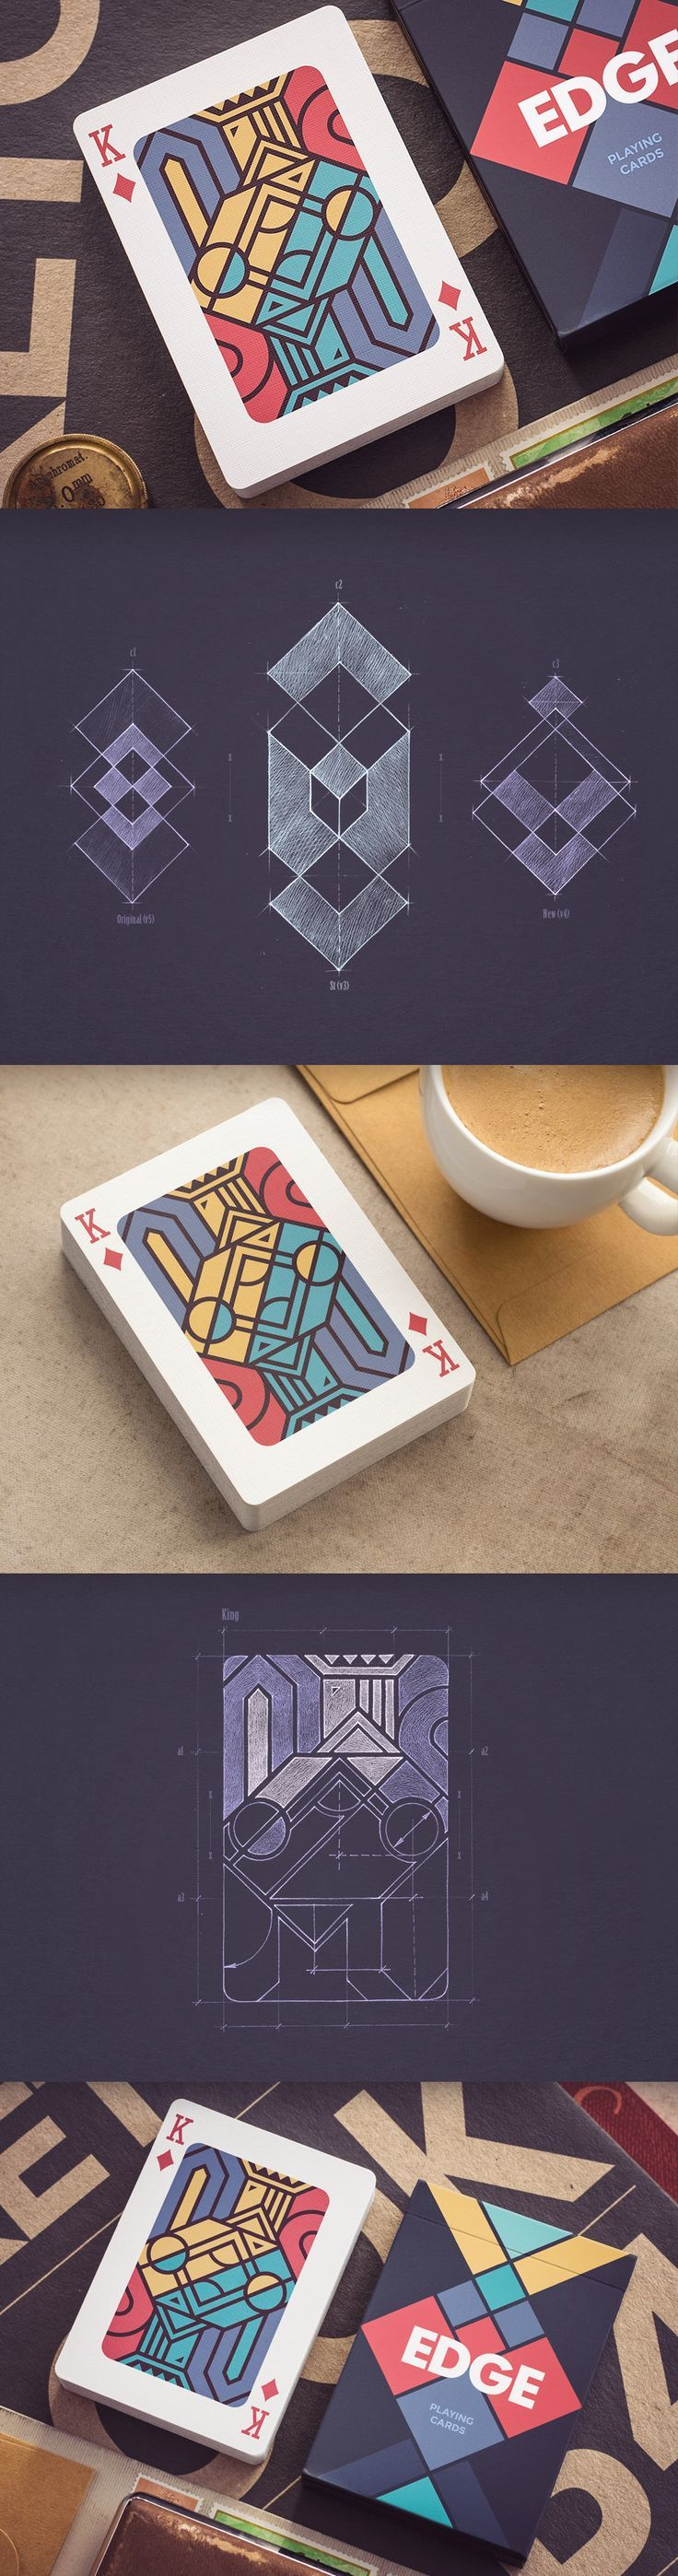 """""""Edge"""" playing cards visual and concept design by Mike 